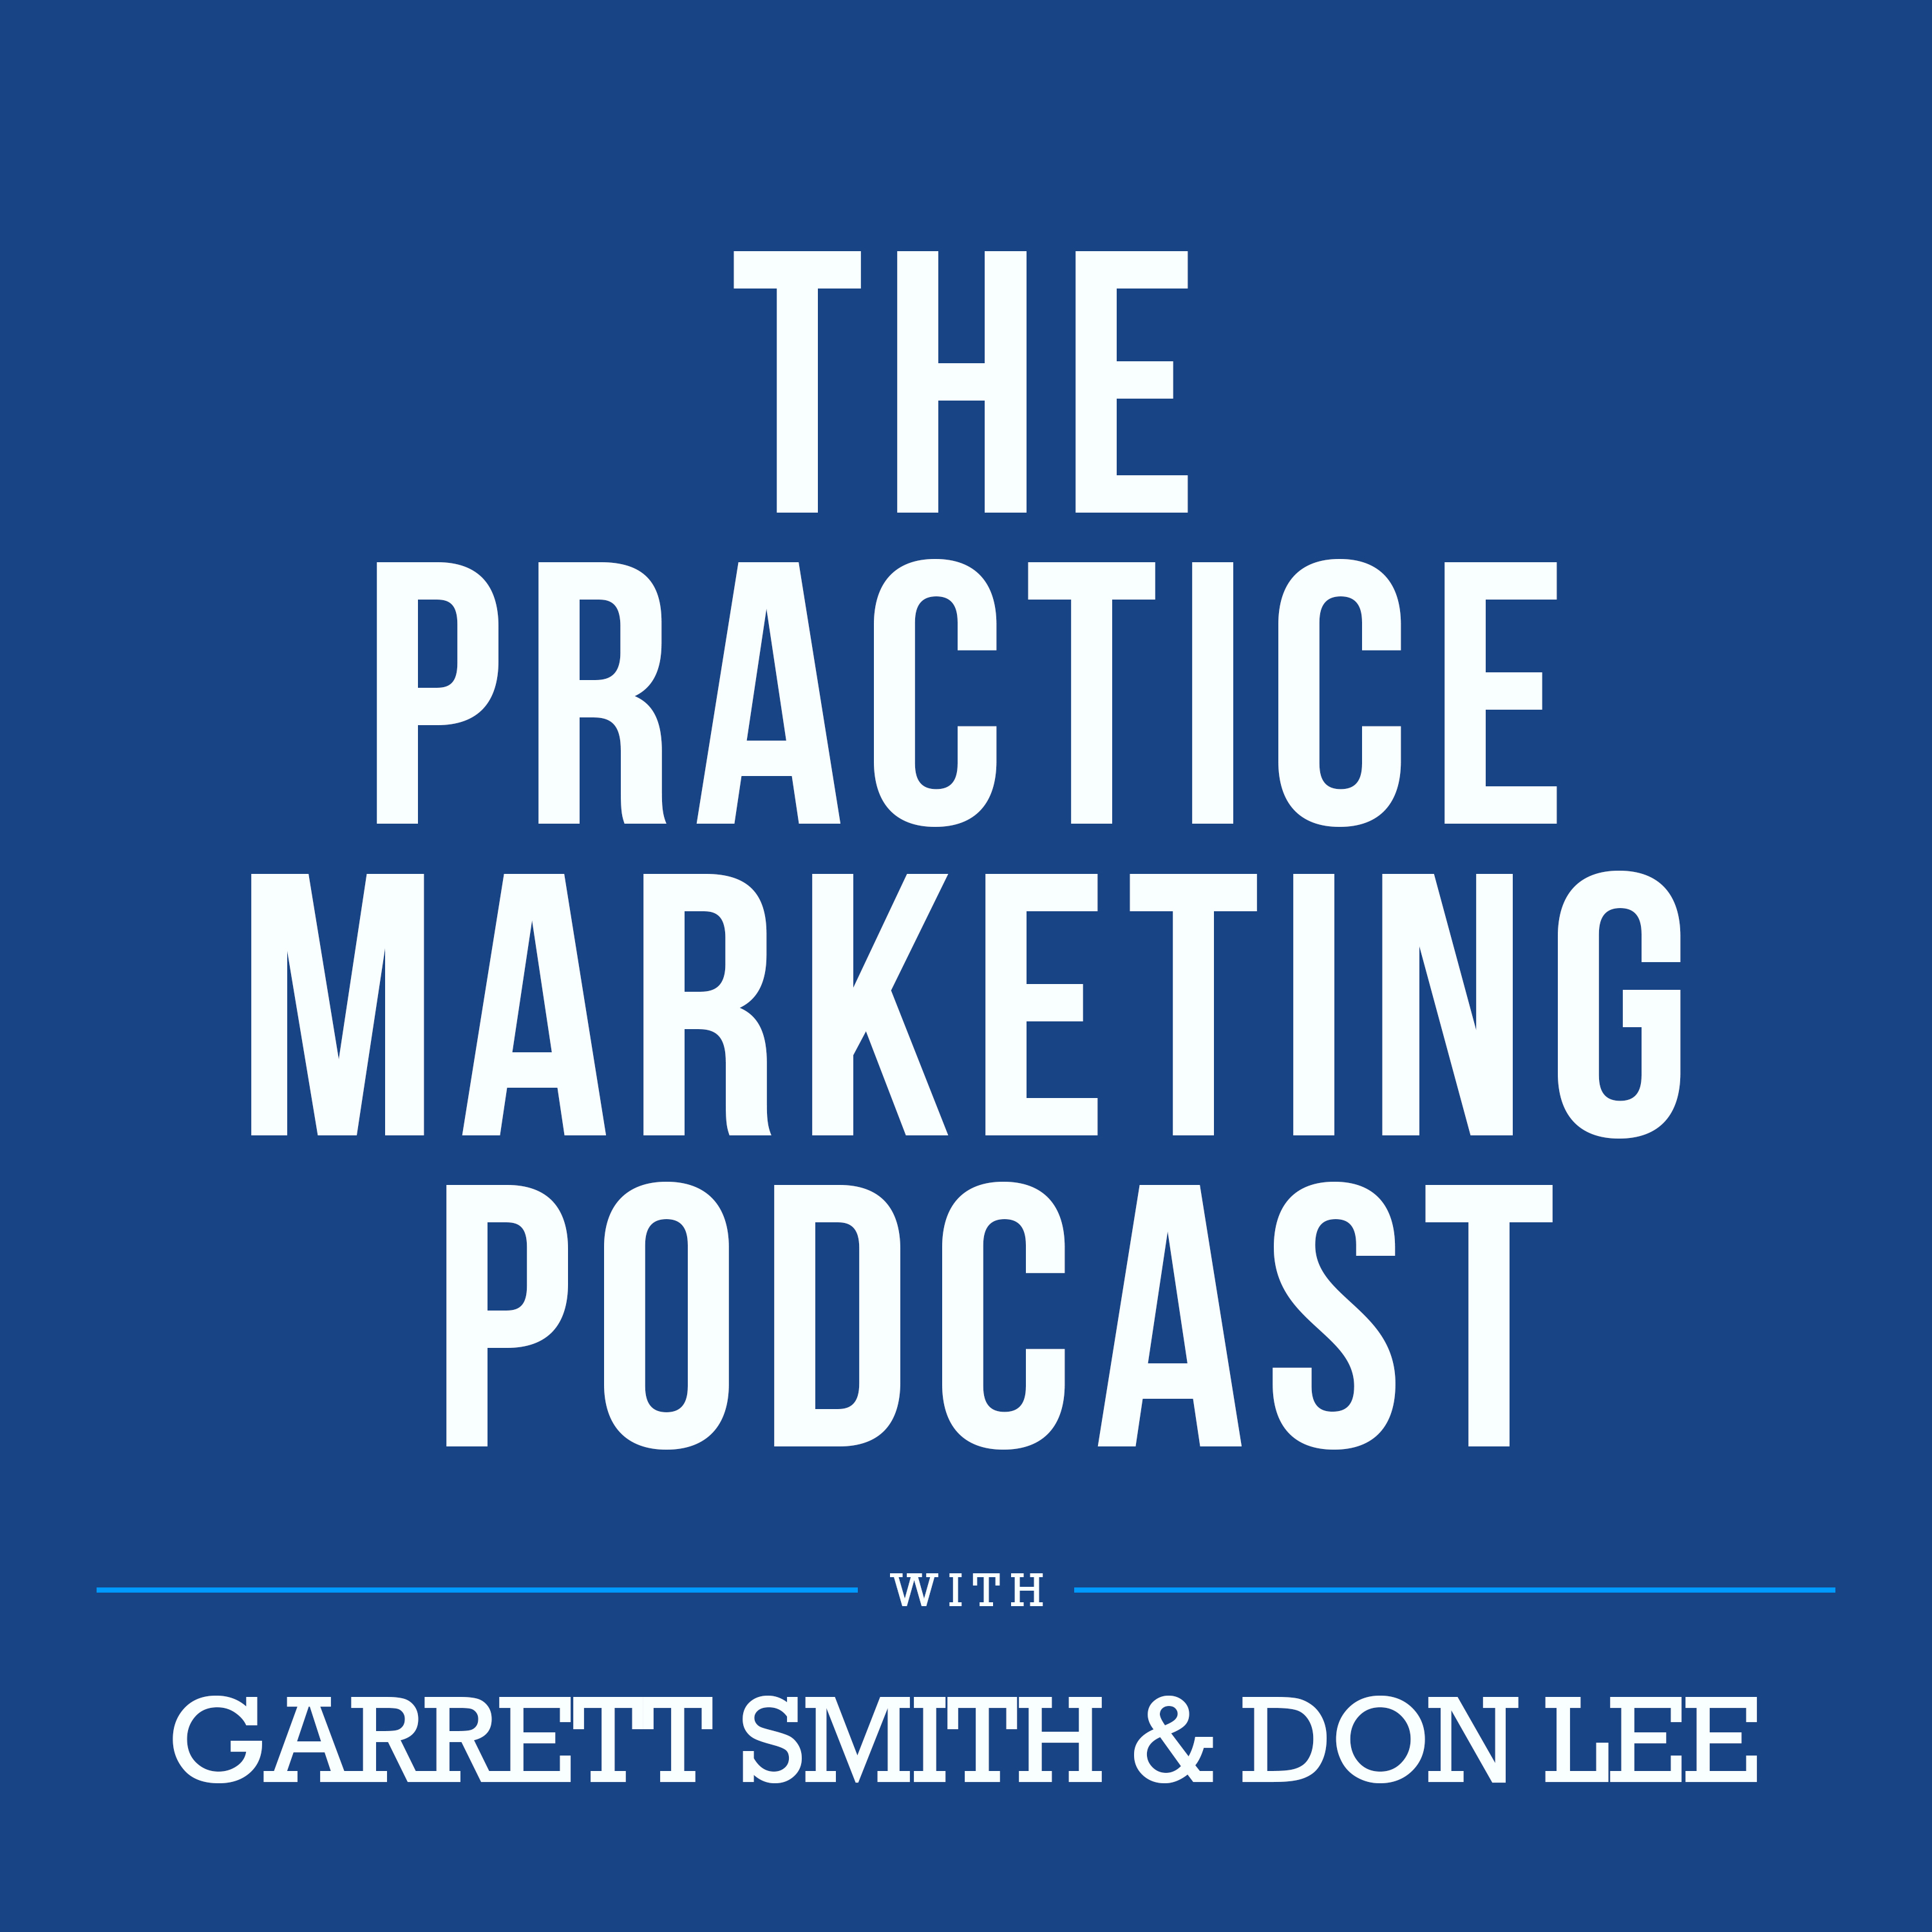 The Practice Marketing Podcast show art